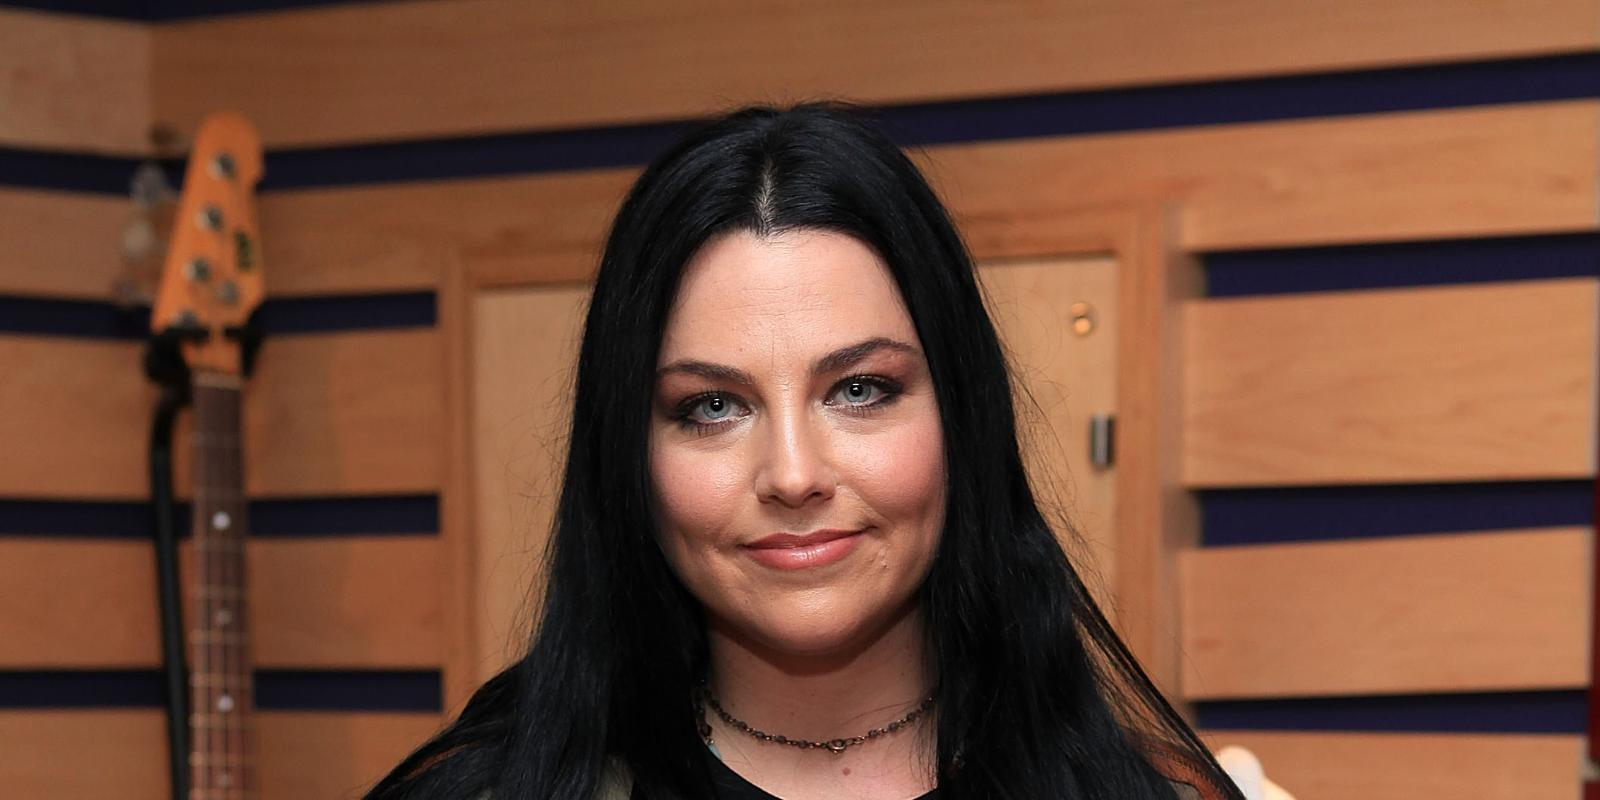 Evanescence 2017 Wallpapers 1600x800